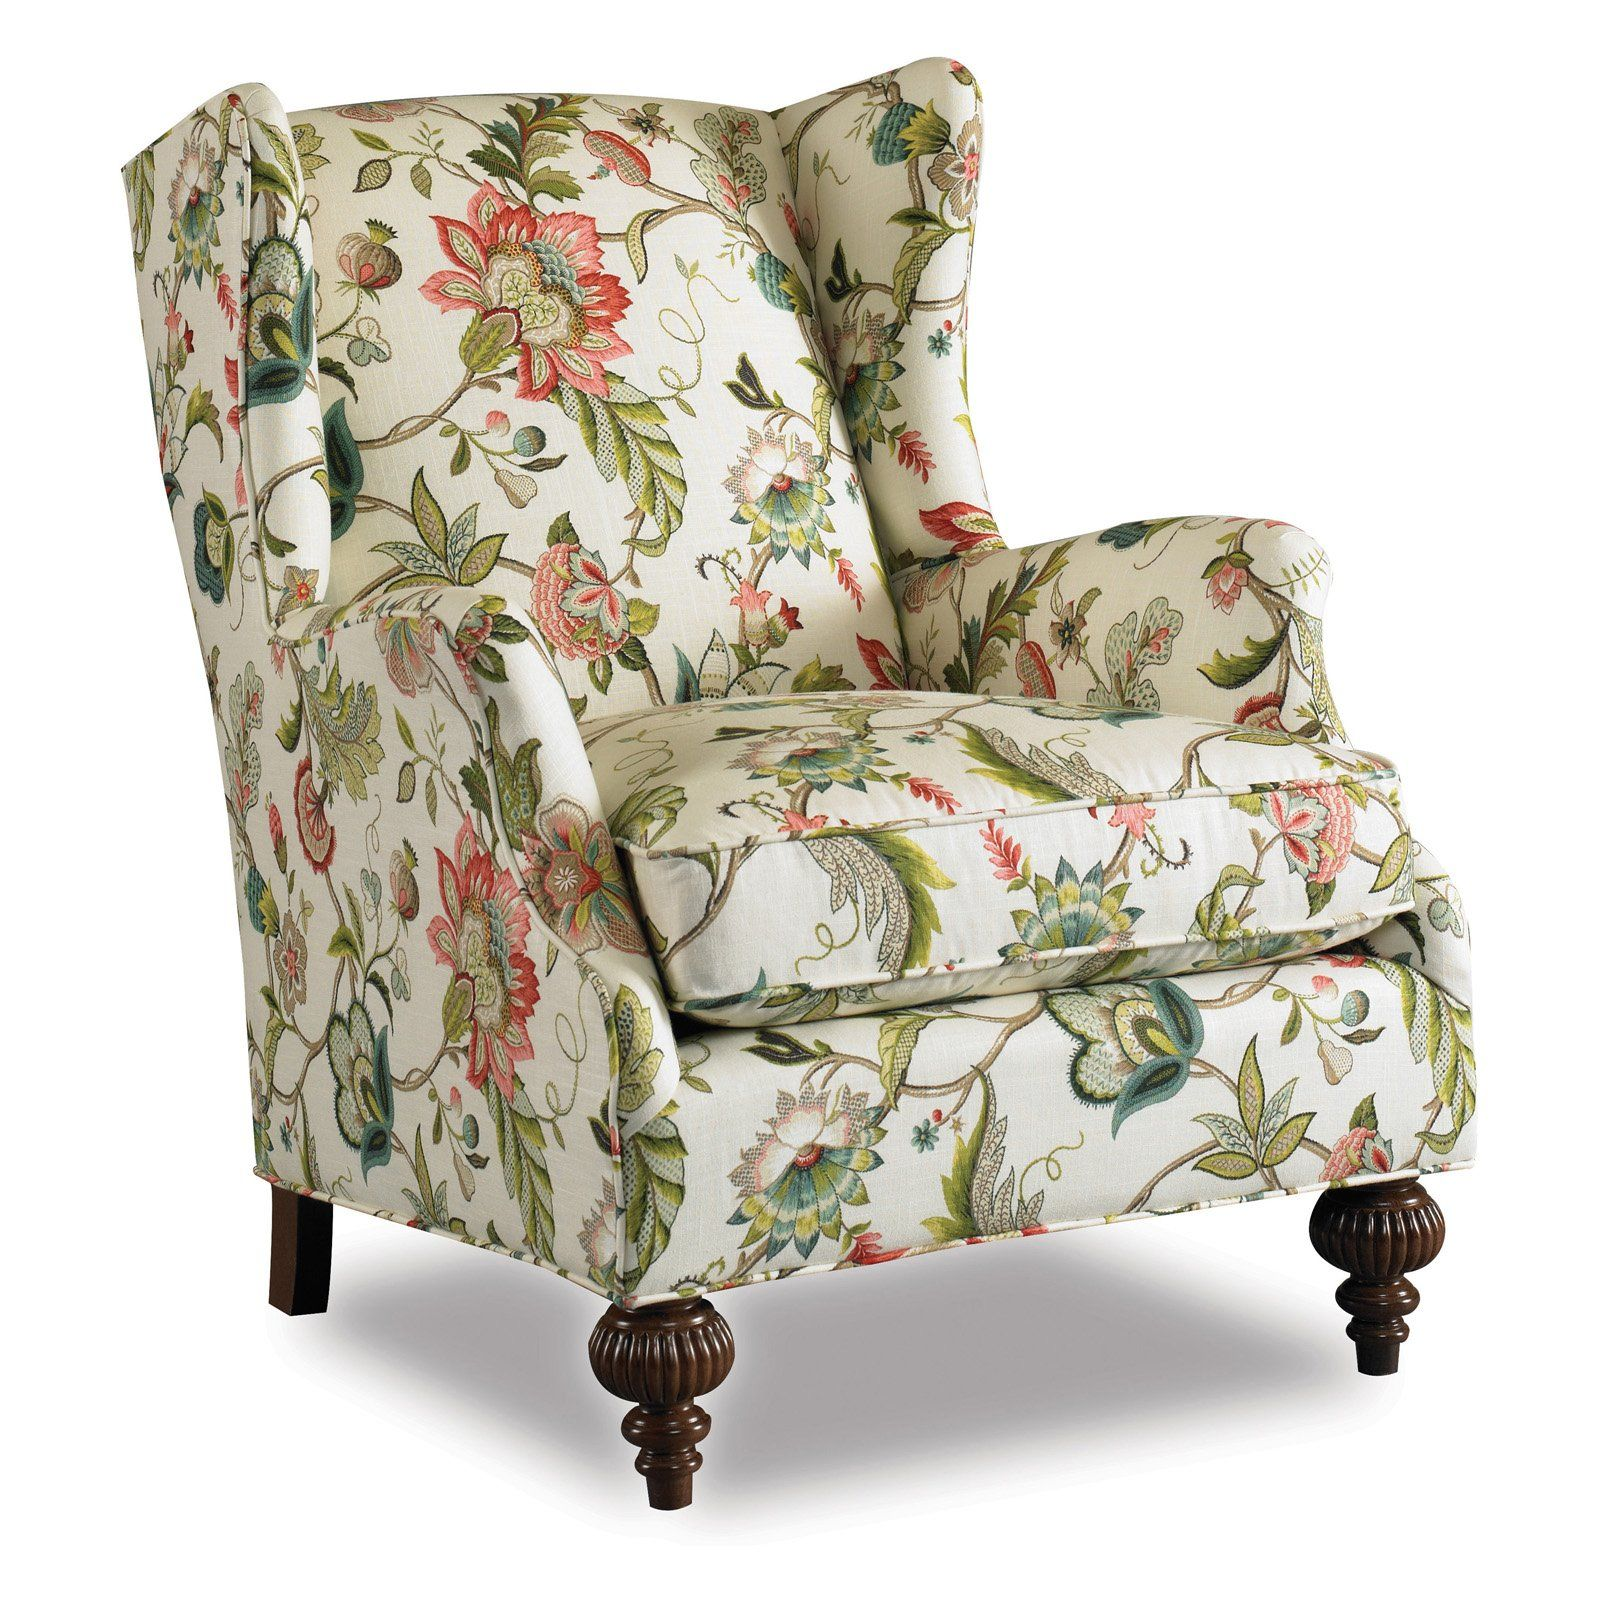 Botanical print upholstery fabric chair abington wing chair jewel upholstered club chairs at hayneedle